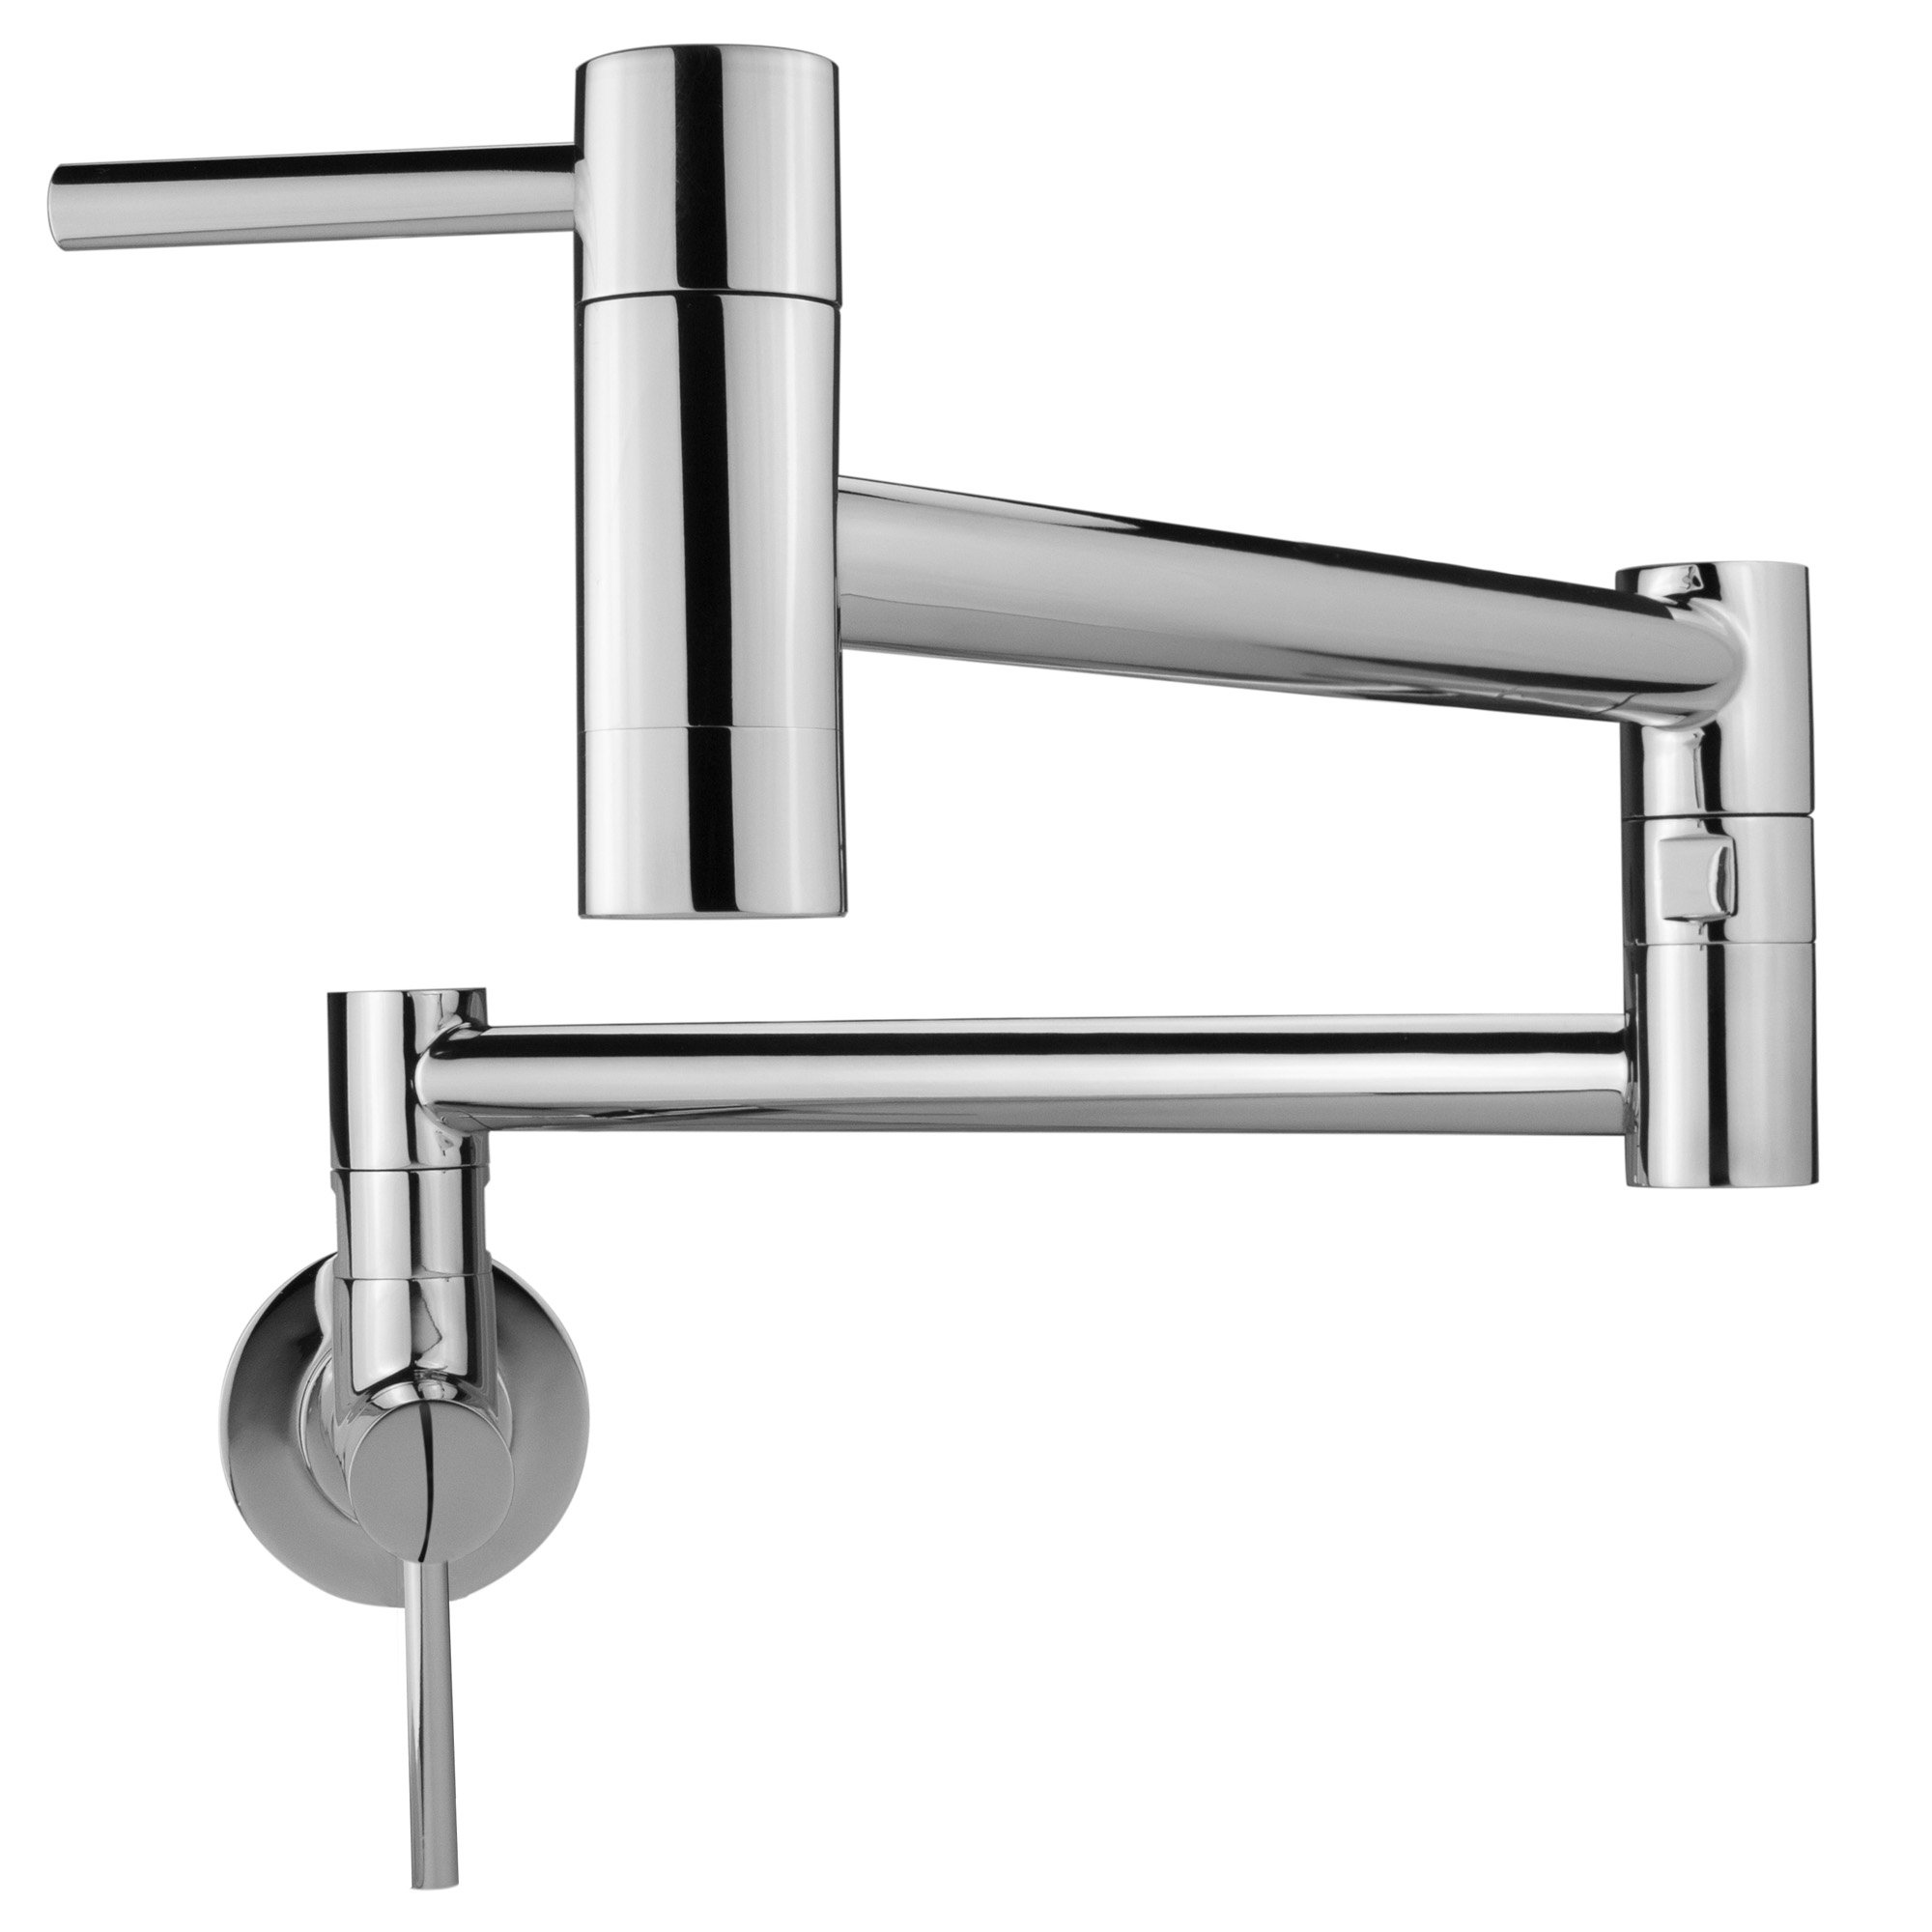 Geyser GF46 Andorra Series Stainless Steel Wall Mount Two Handle Pot Filler Faucet (Chrome Polish Finish)